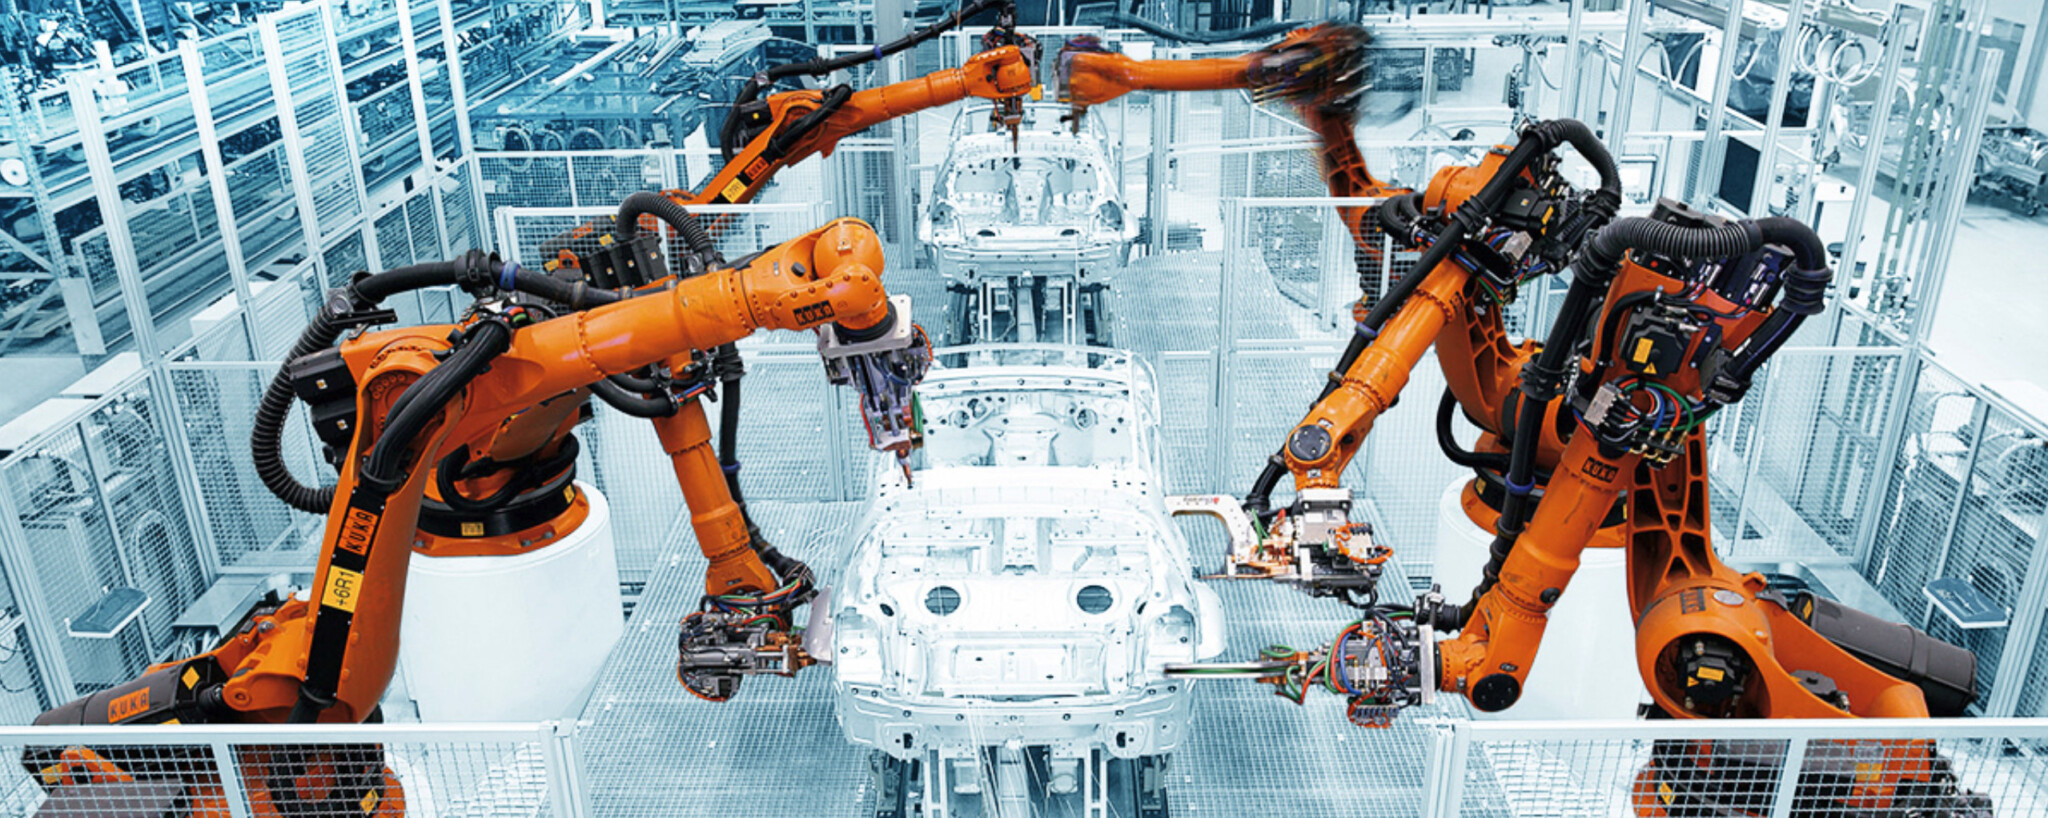 Global challenges to automation